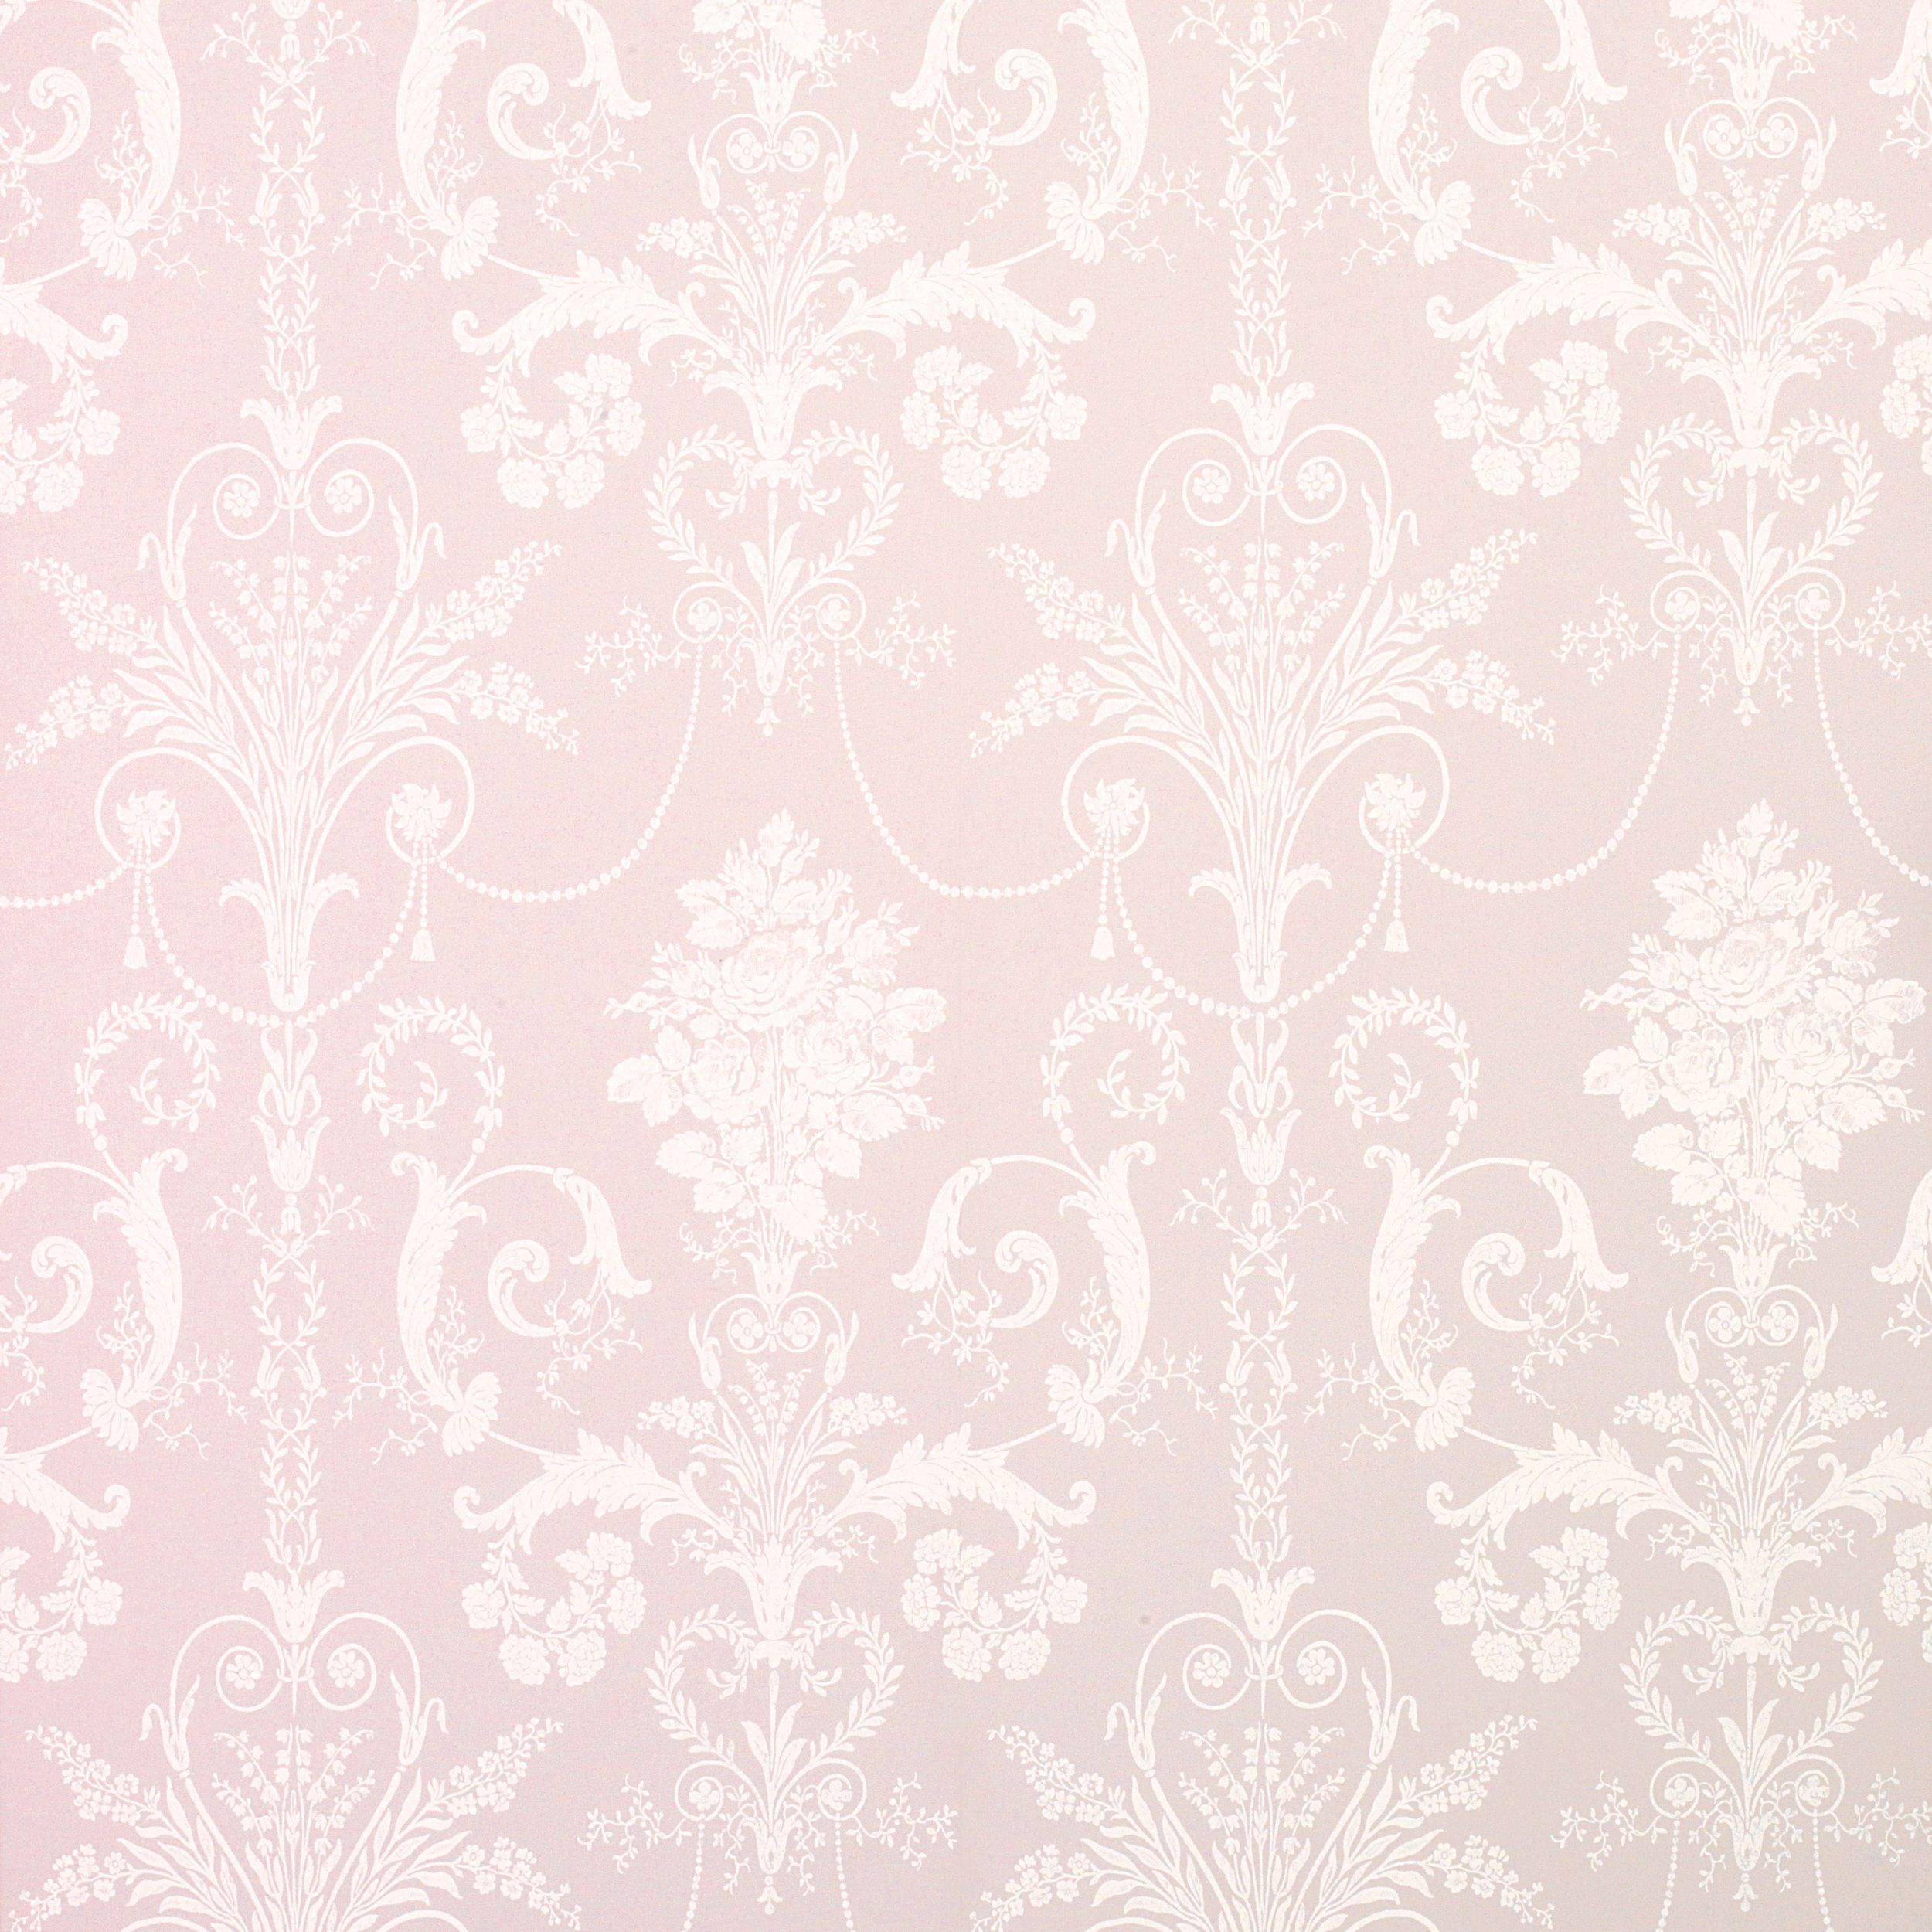 Pink Wallpaper For Bedroom Josette Wallpaper In Amethyst Pink With White Rococo Damask